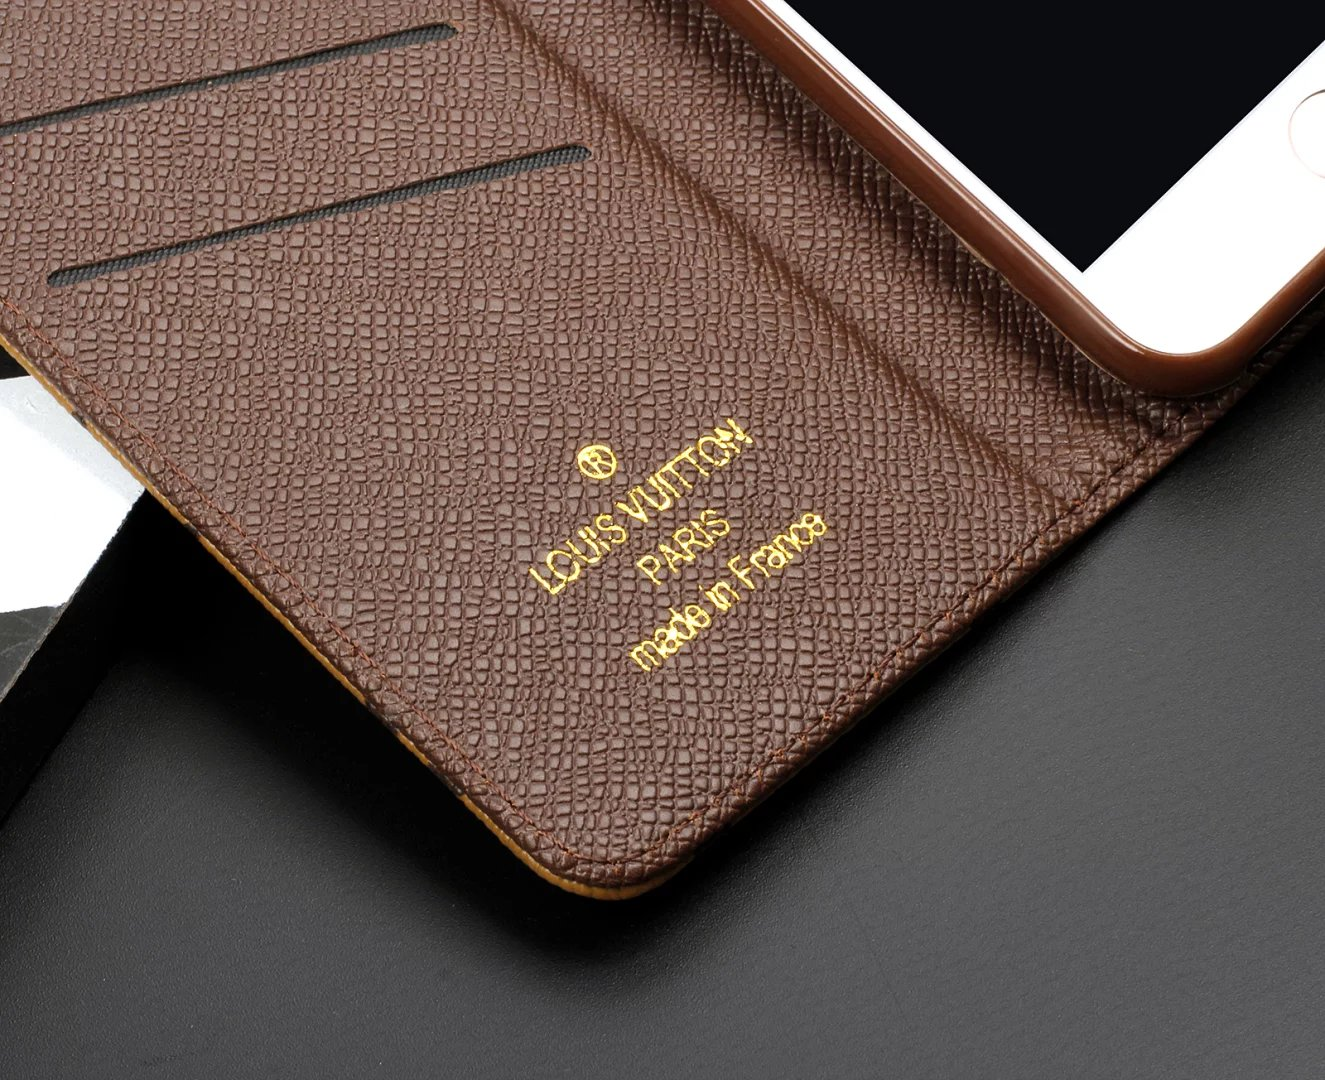 covers for iphone 8 Plus apple iphone 8 Plus cases and covers Louis Vuitton iphone 8 Plus case case iPhone 8 Plus 8 Plus protective case for iphone 8 Plus 8 Plus cover iphone mobi juice pack cell phone cases and covers iphones covers and cases